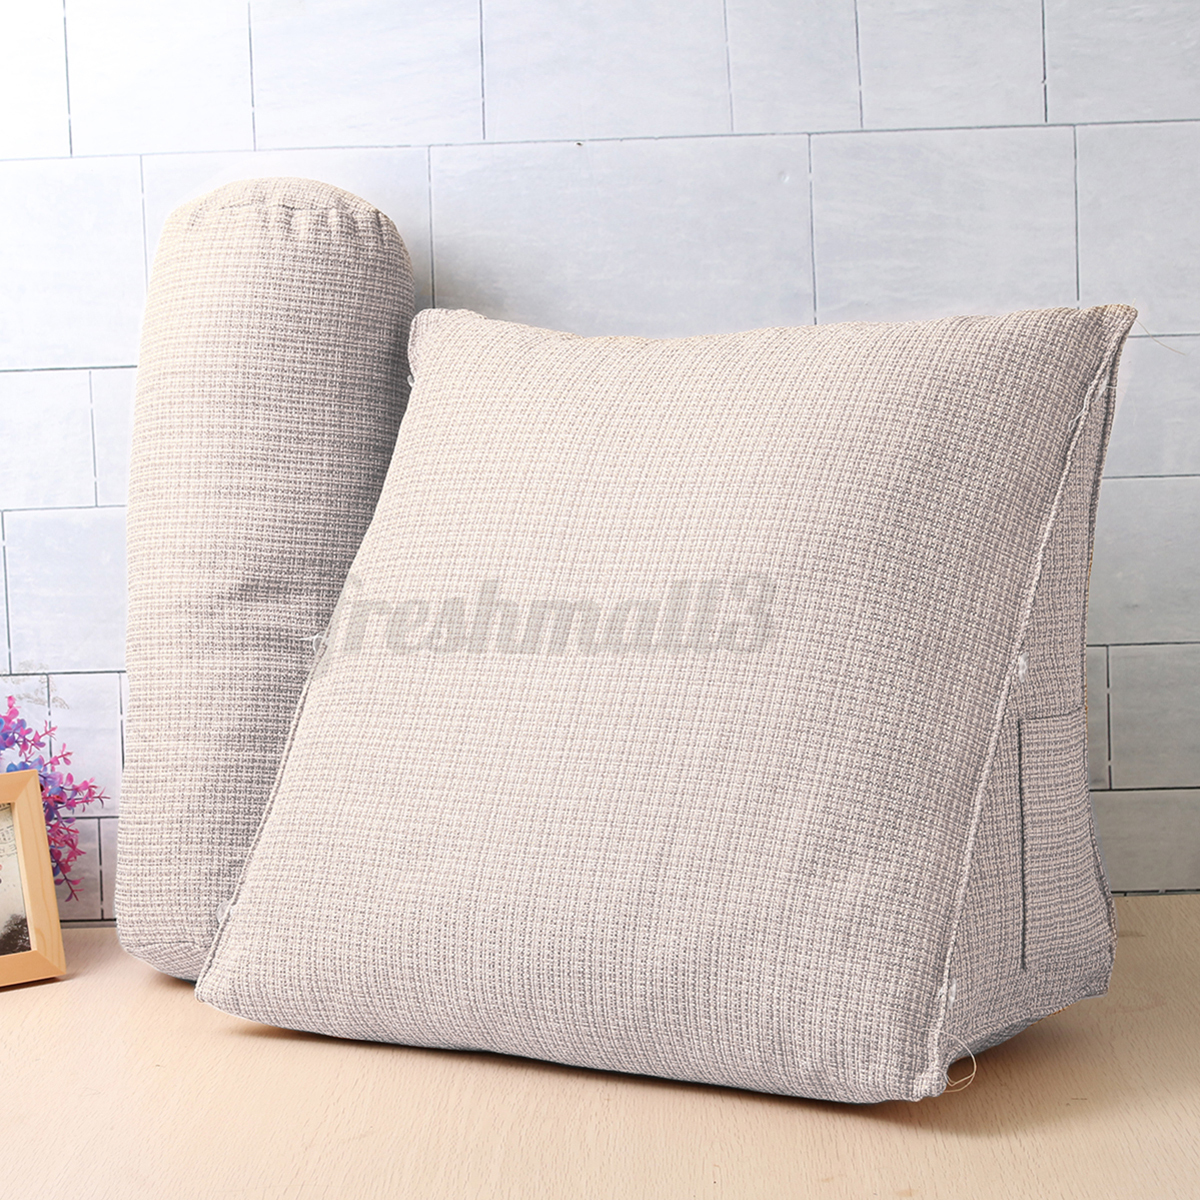 Big Cushion Sofa Big Adjustable Back Wedge Cushion Pillow Sofa Bed Office